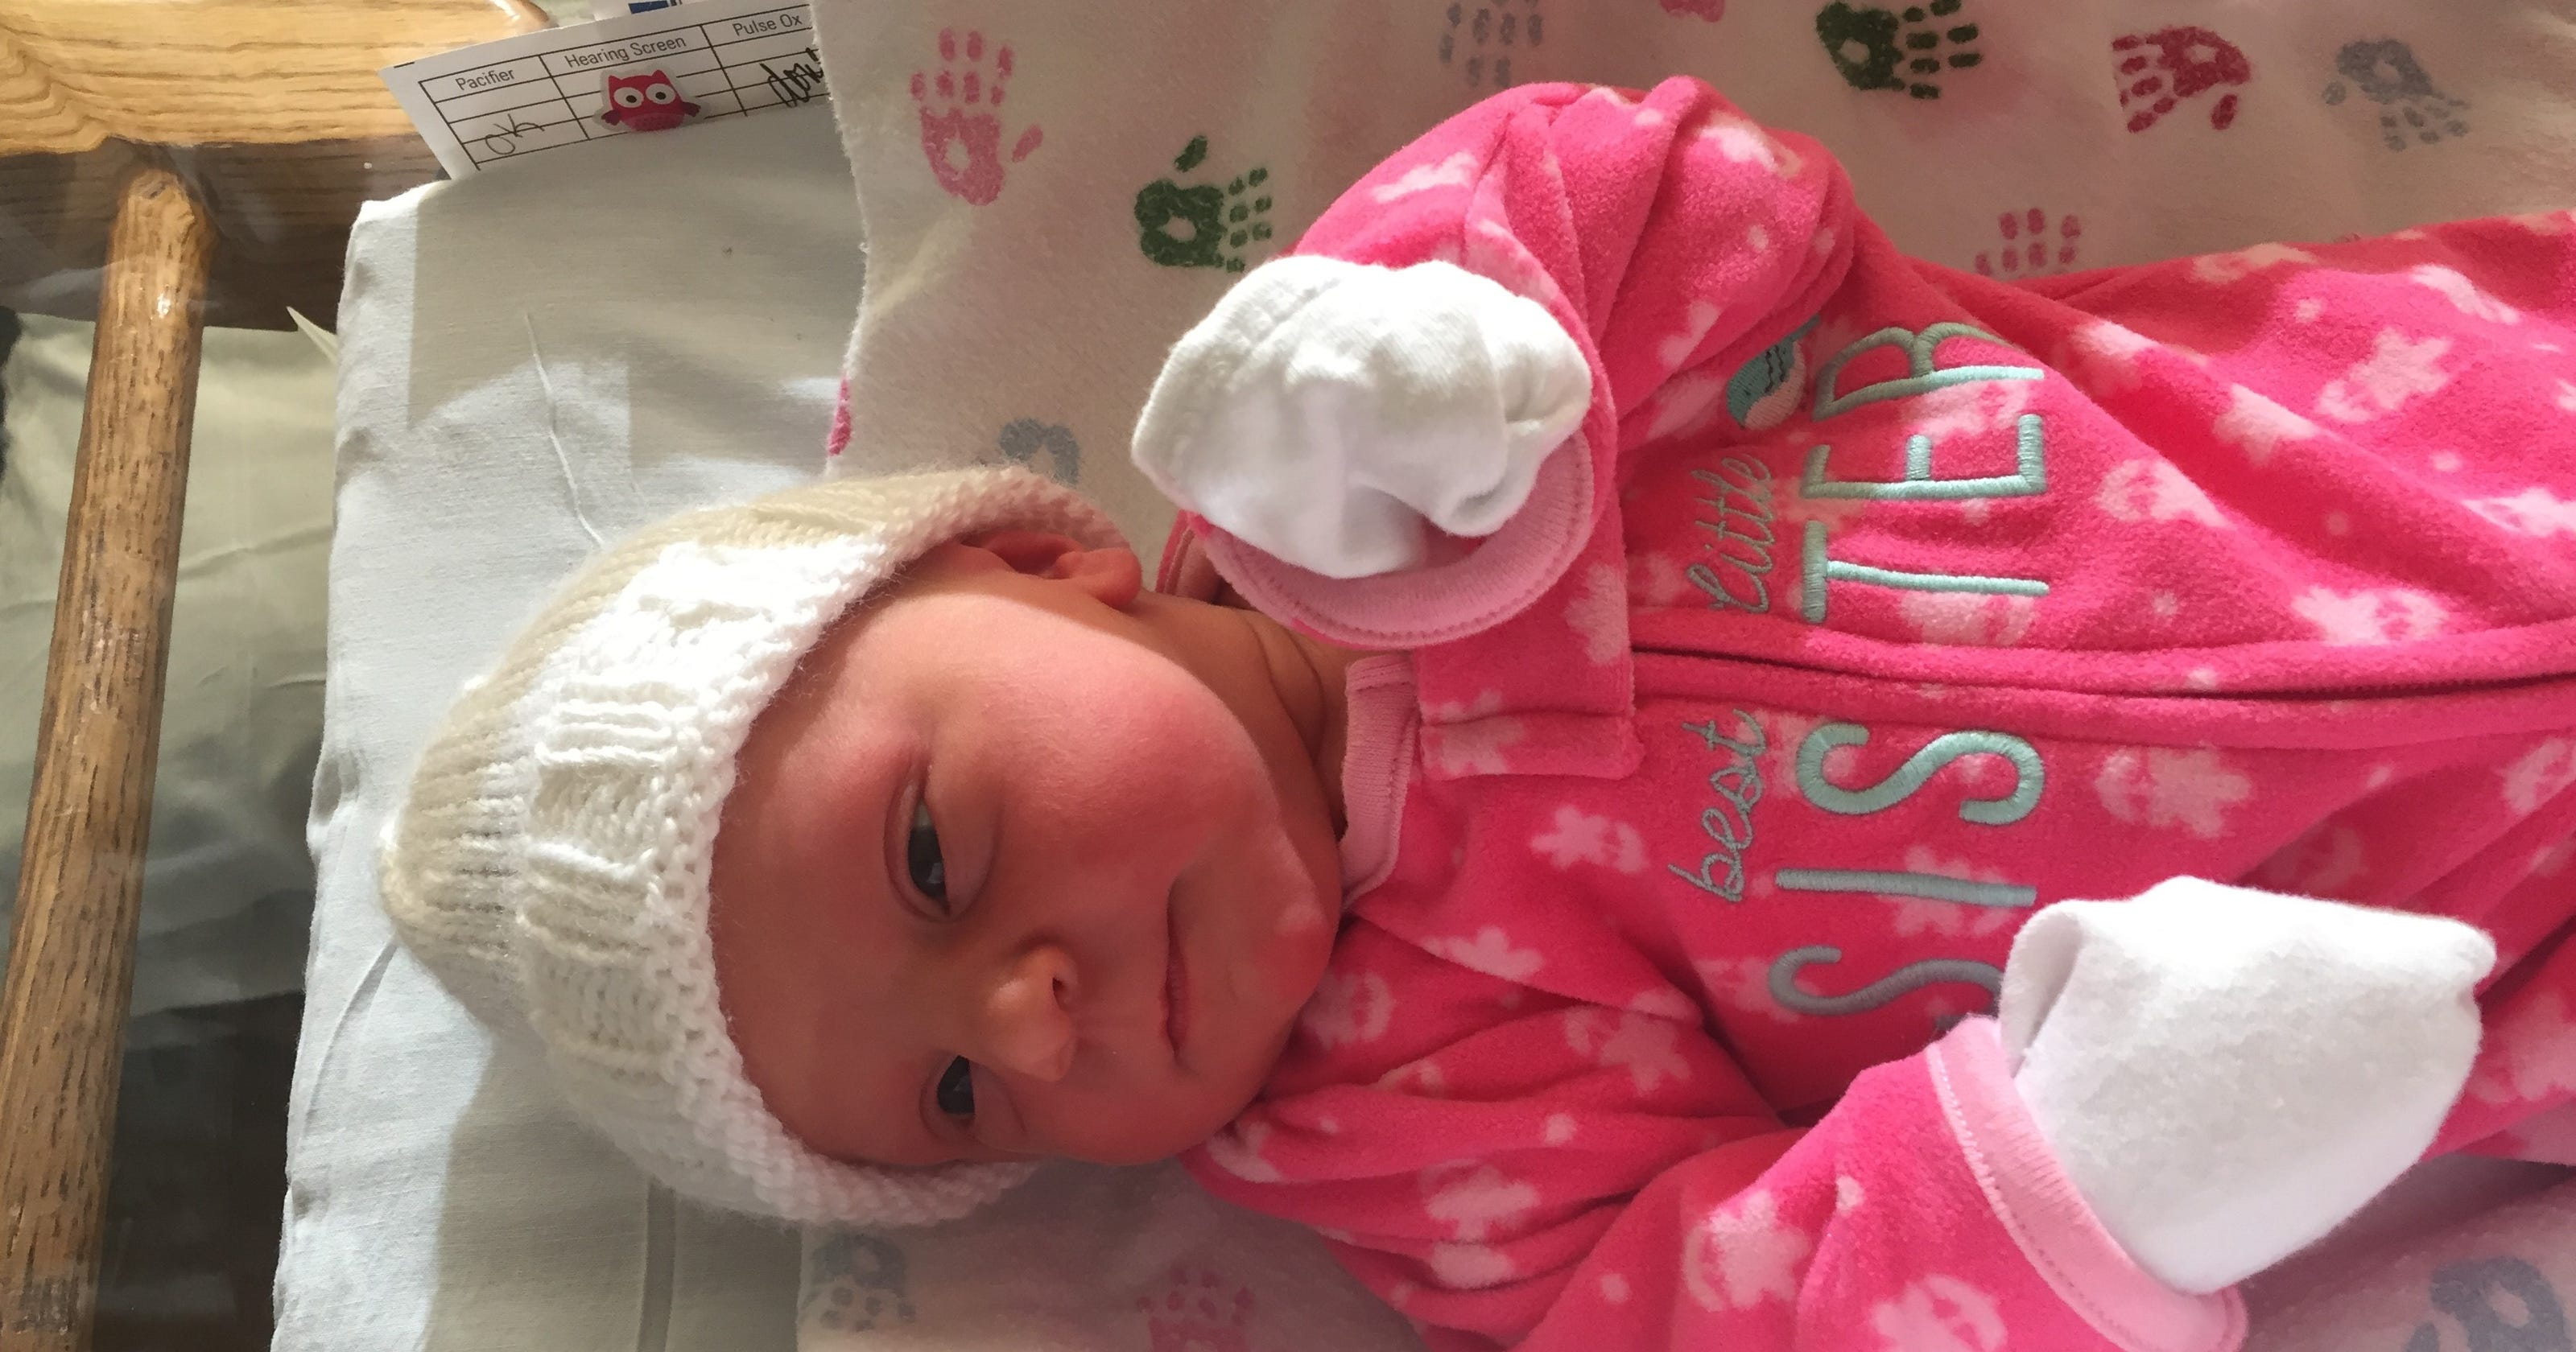 445f38df New Year's baby from Brookfield born at 12:04 a.m.